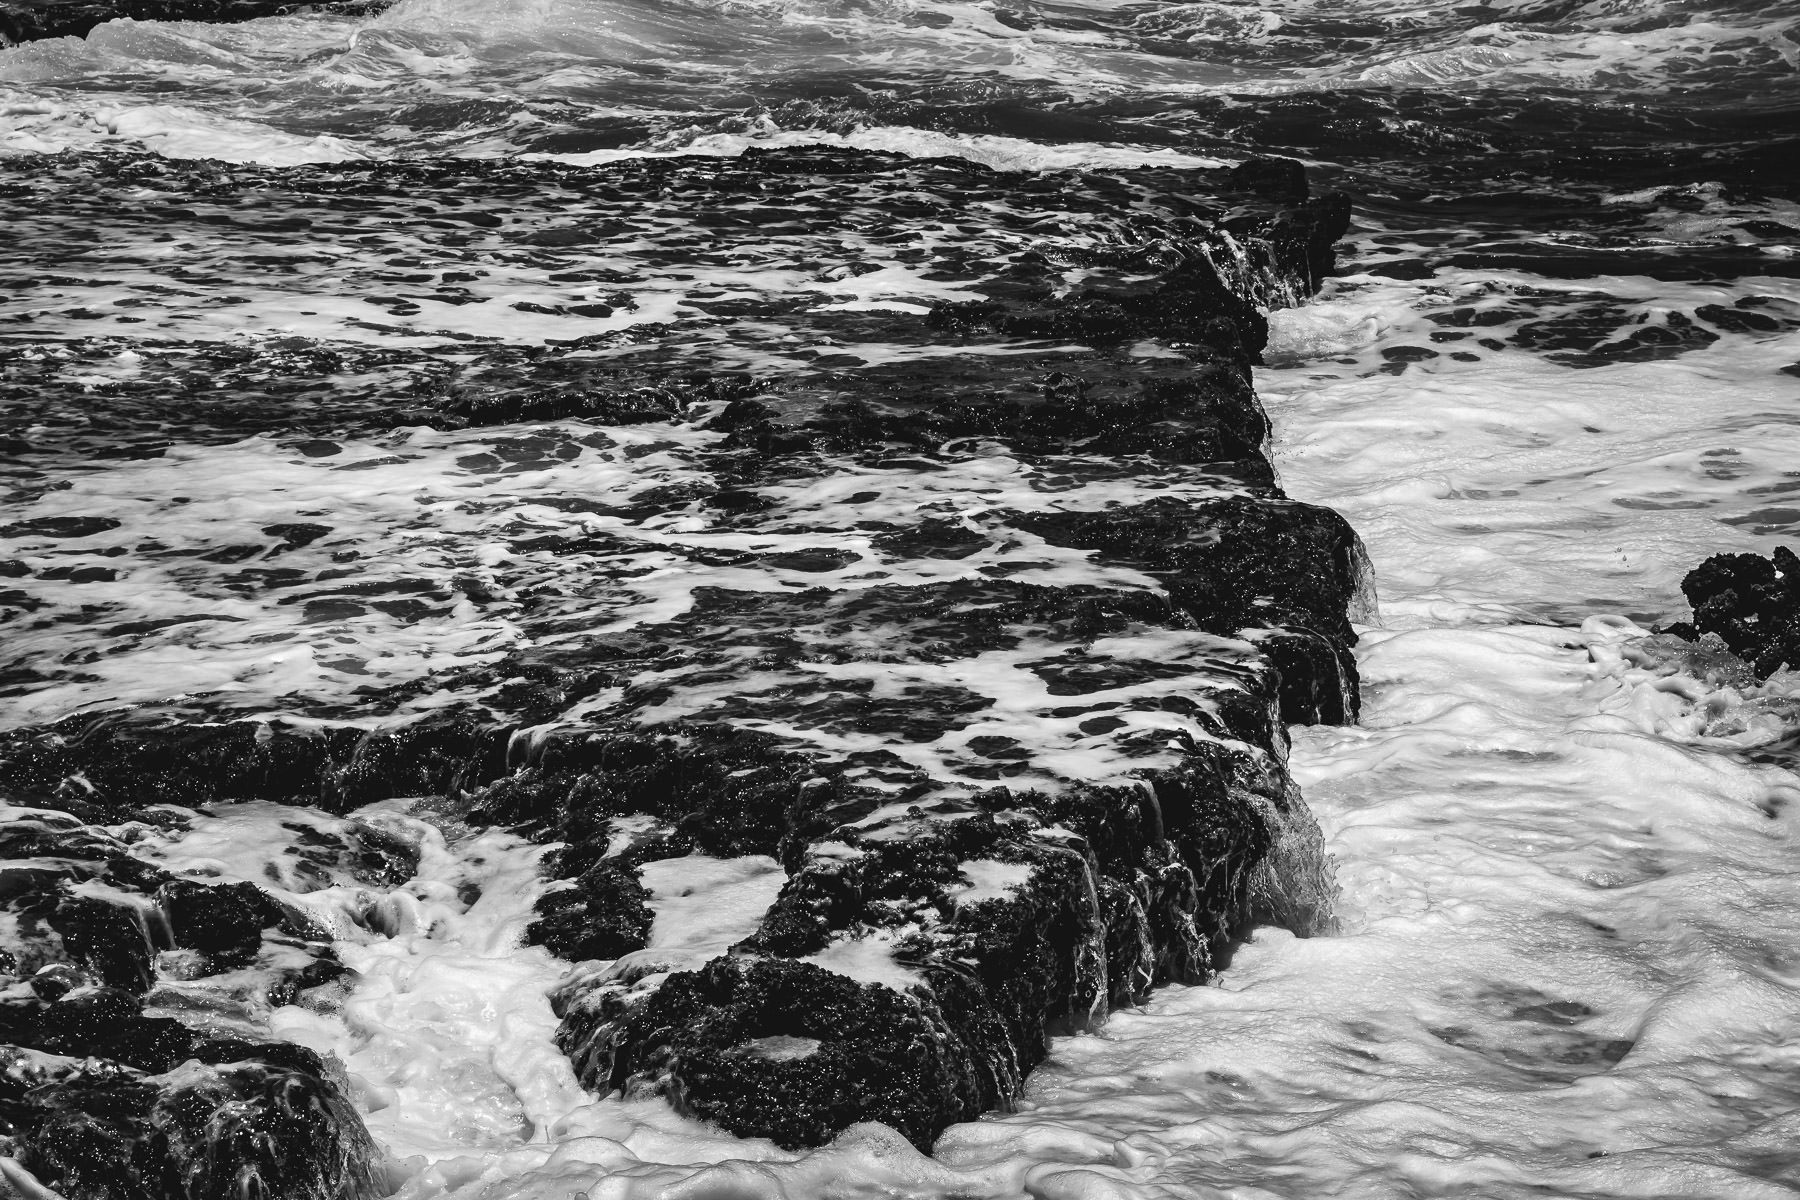 Atlantic Ocean waves drain over the rocky shoreline at El Mirador, Cozumel, Mexico.